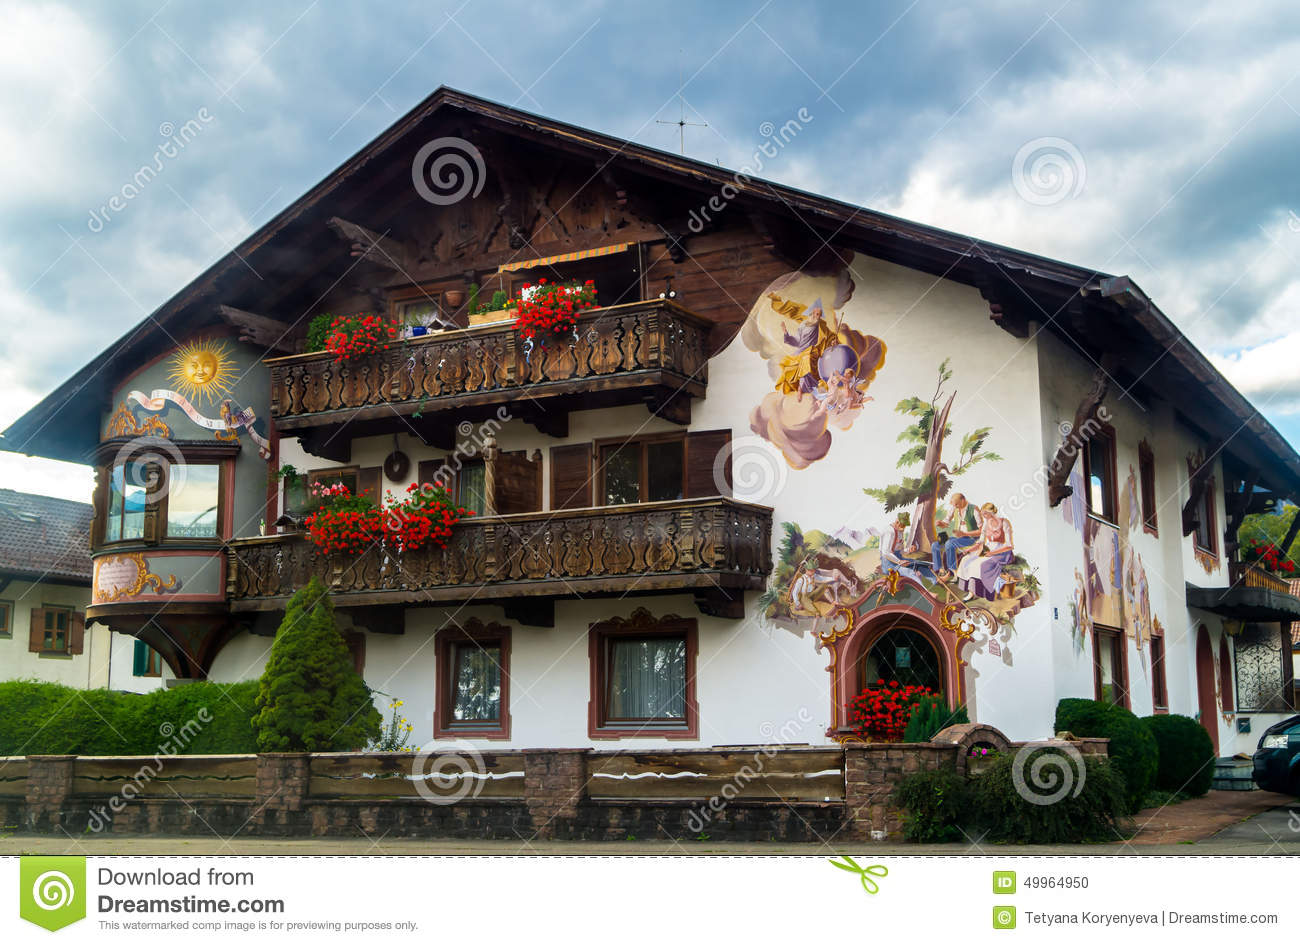 Old House In The Bavarian Style Stock Photo Image 49964950